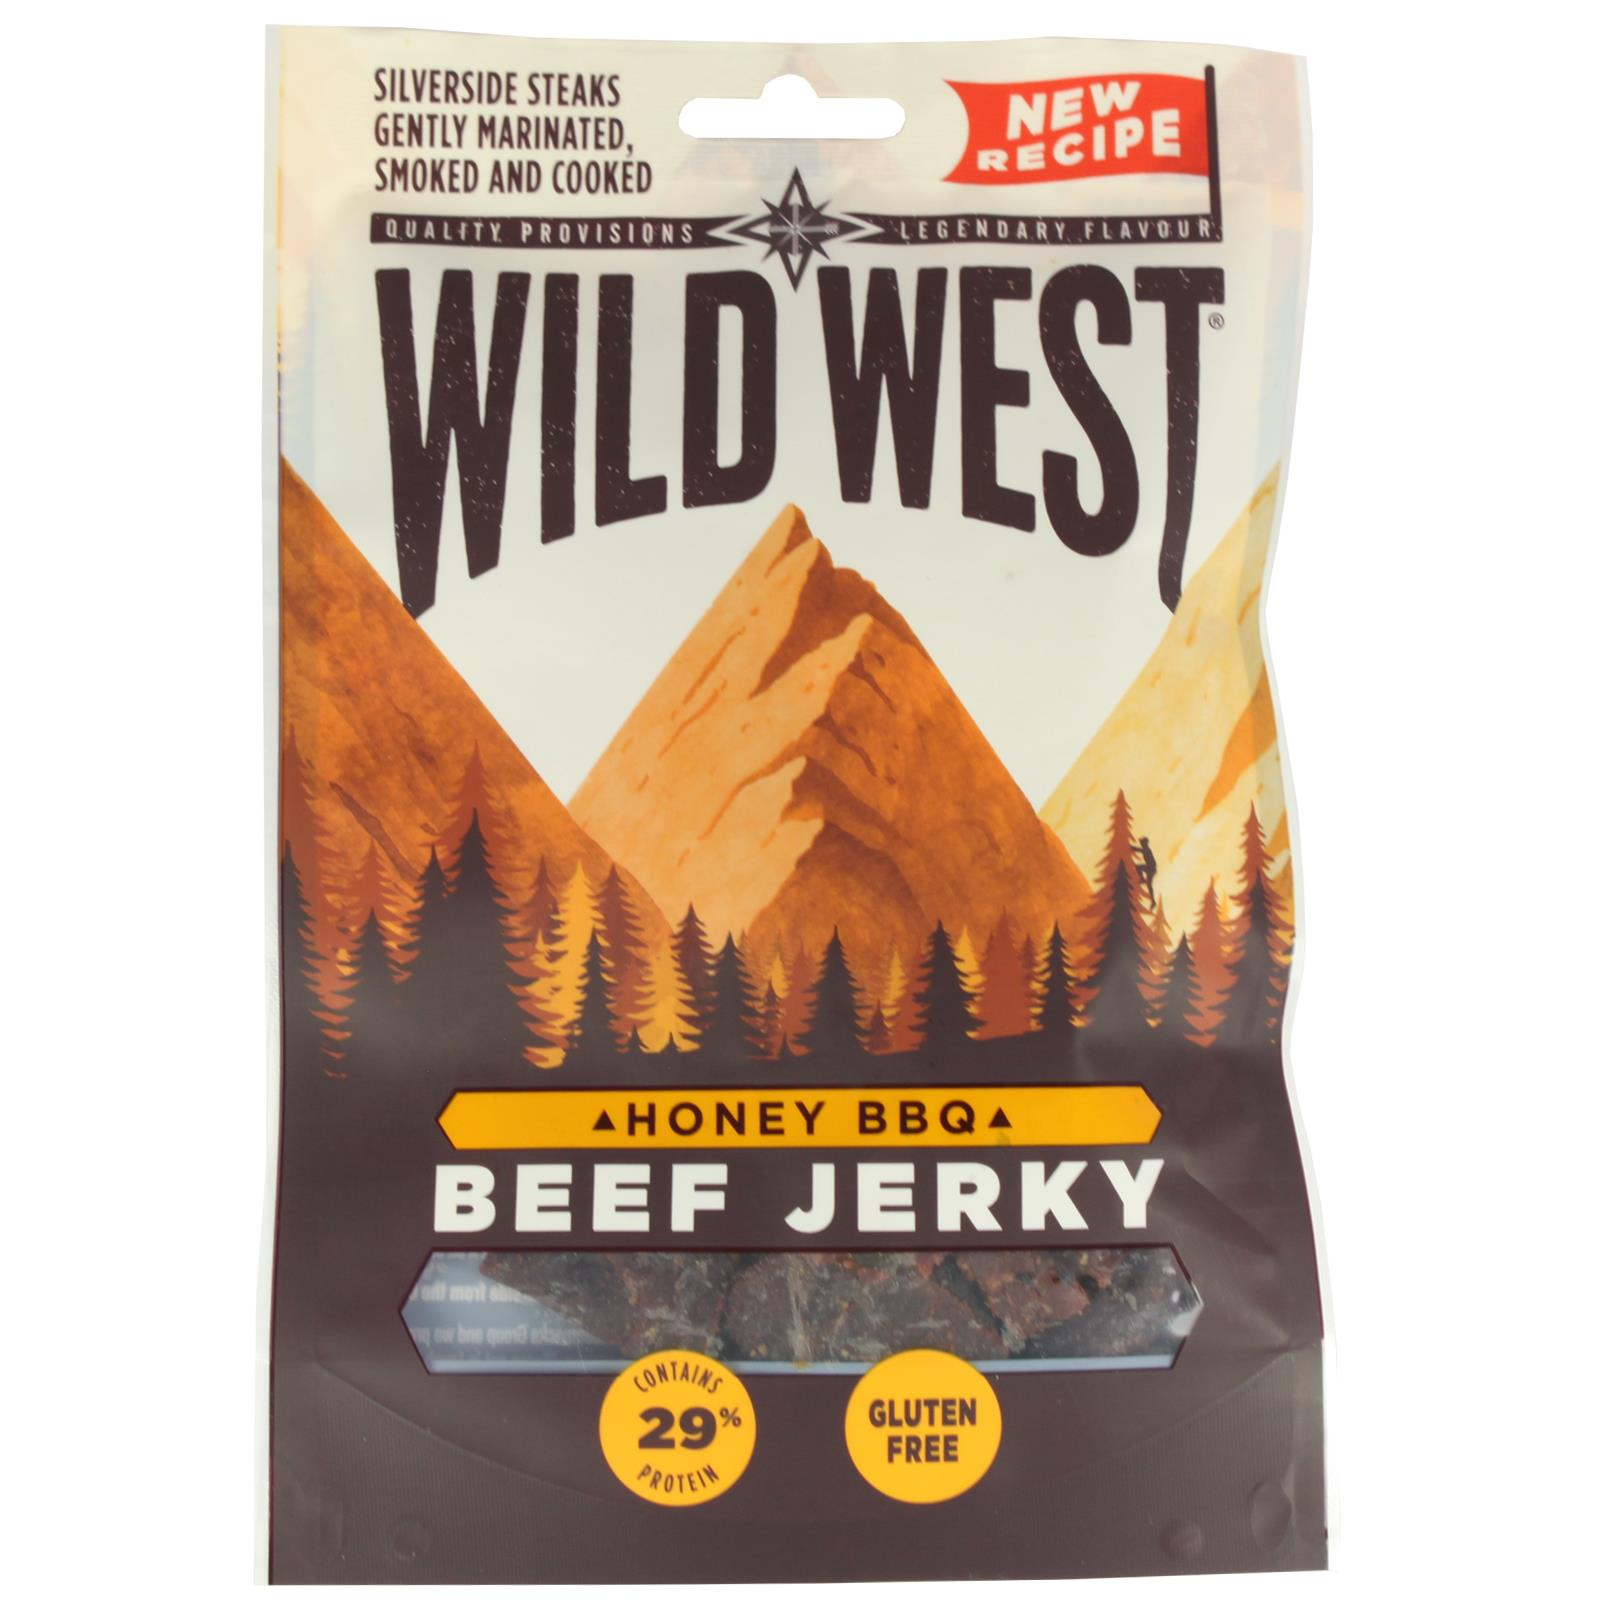 Wild-West-Beef-Jerky-All-Flavours-Mixed-Packs-Gluten-Free-High-Protein-Snack miniatura 4